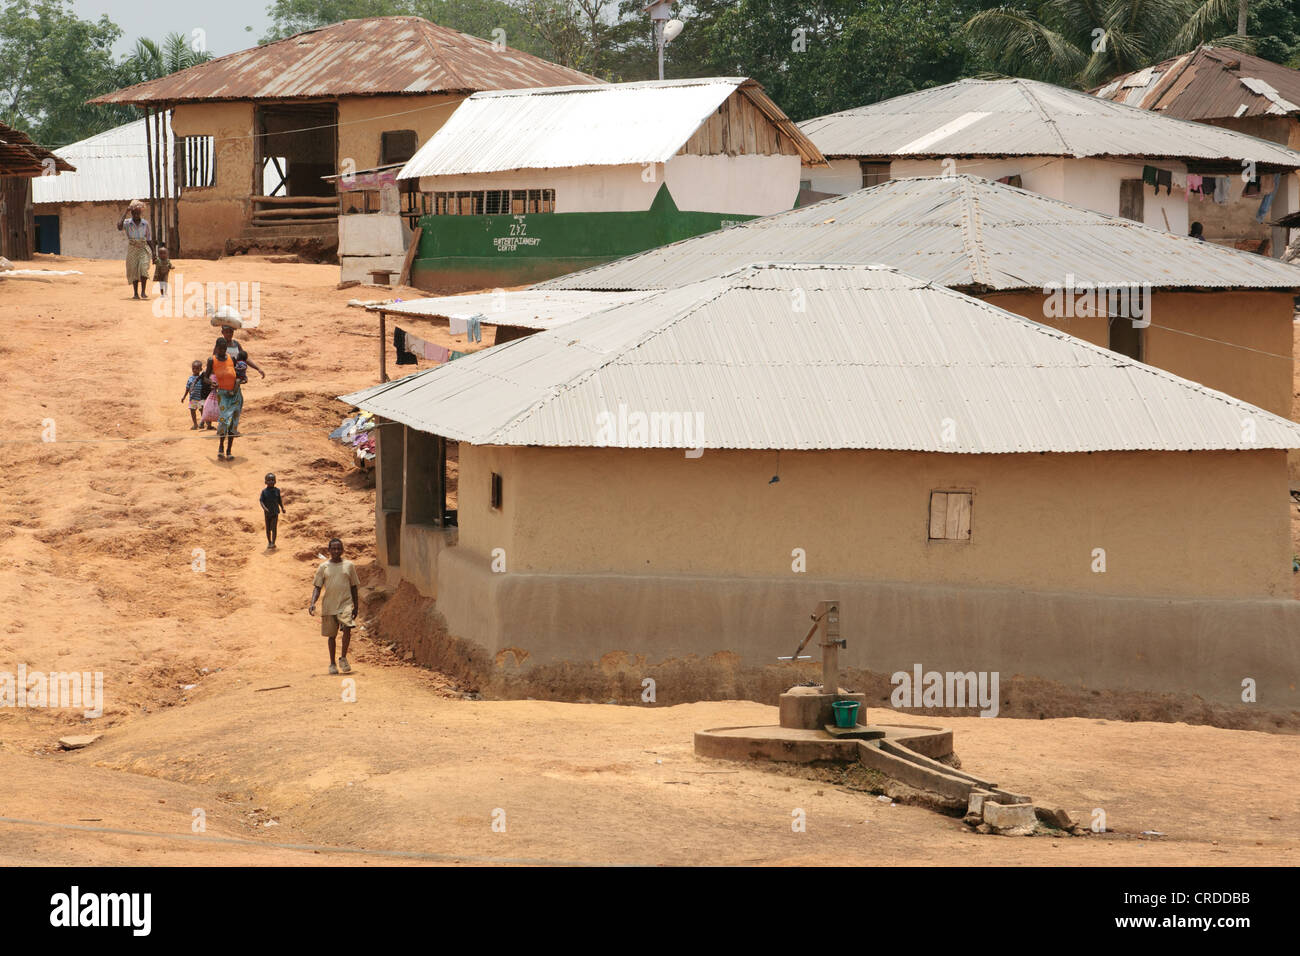 People walk through the village of Julijuah, Bomi county, Liberia on Tuesday April 3, 2012. - Stock Image